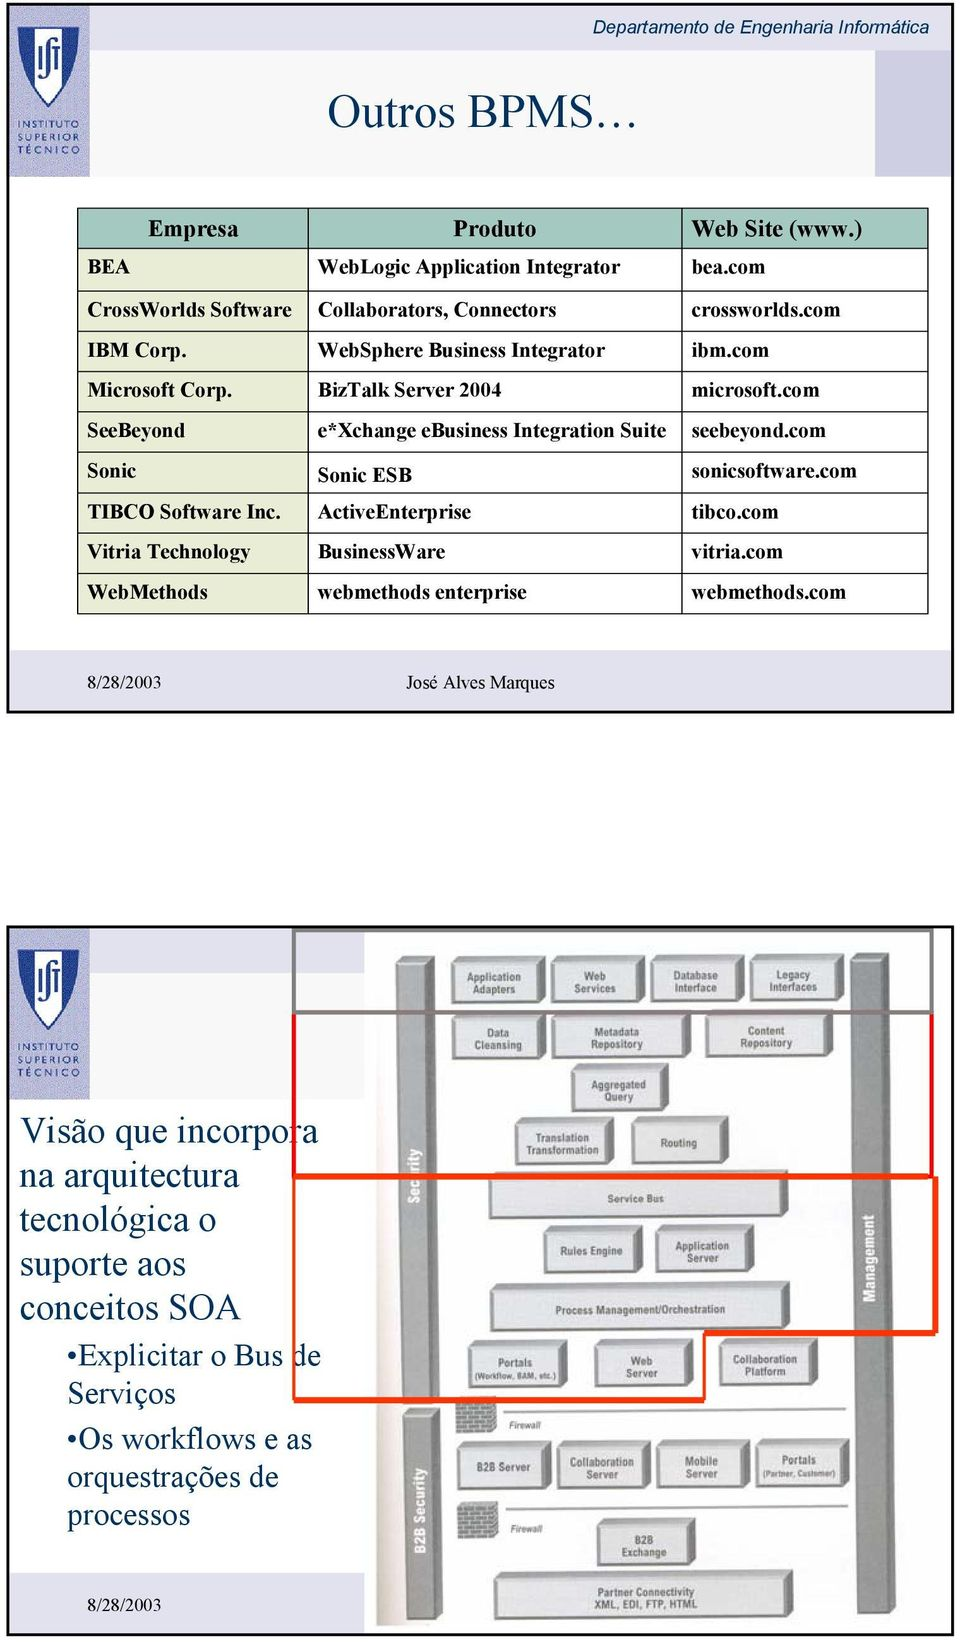 Vitria Technology WebMethods Collaborators, Connectors WebSphere Business Integrator BizTalk Server 2004 e*xchange ebusiness Integration Suite Sonic ESB